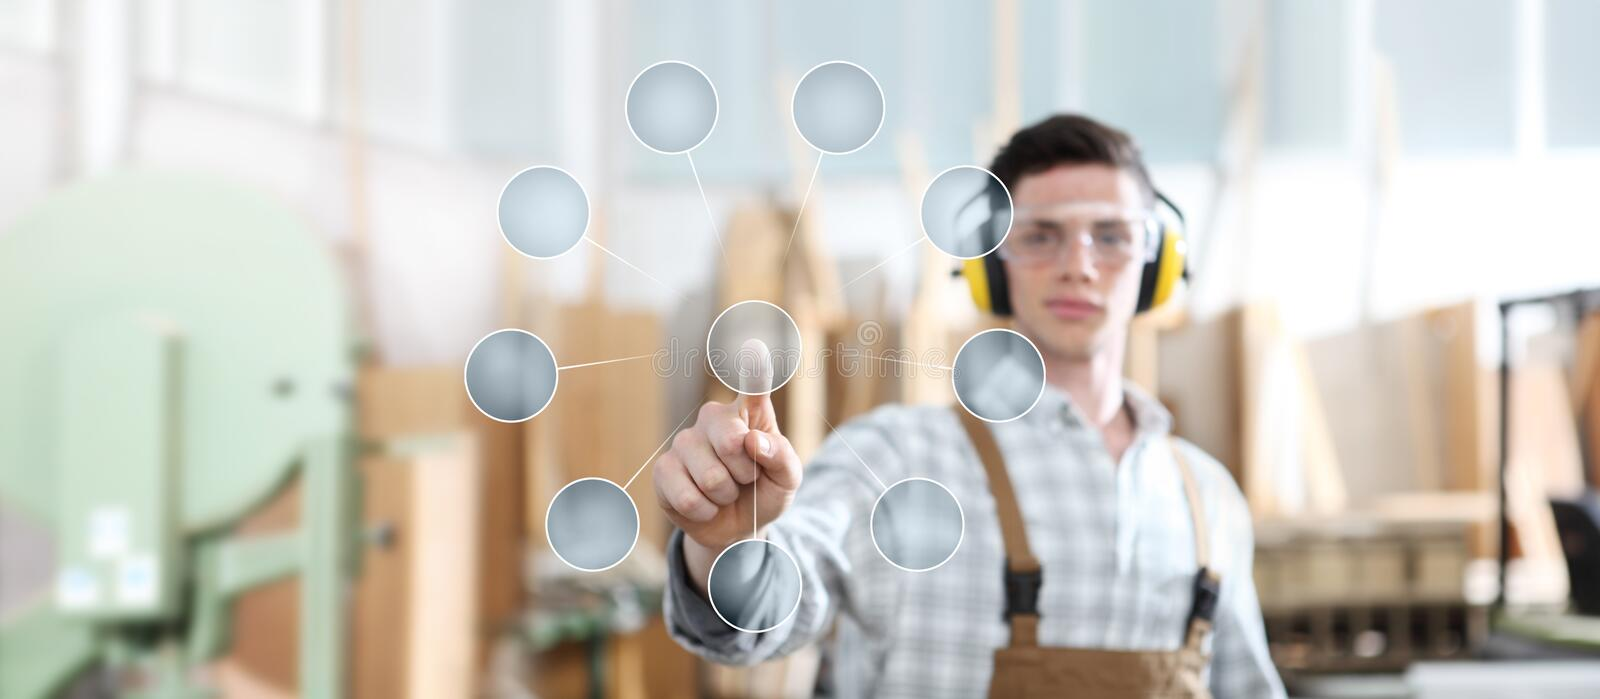 Carpenter man touch screen with empty symbol icons on carpentry background stock photo